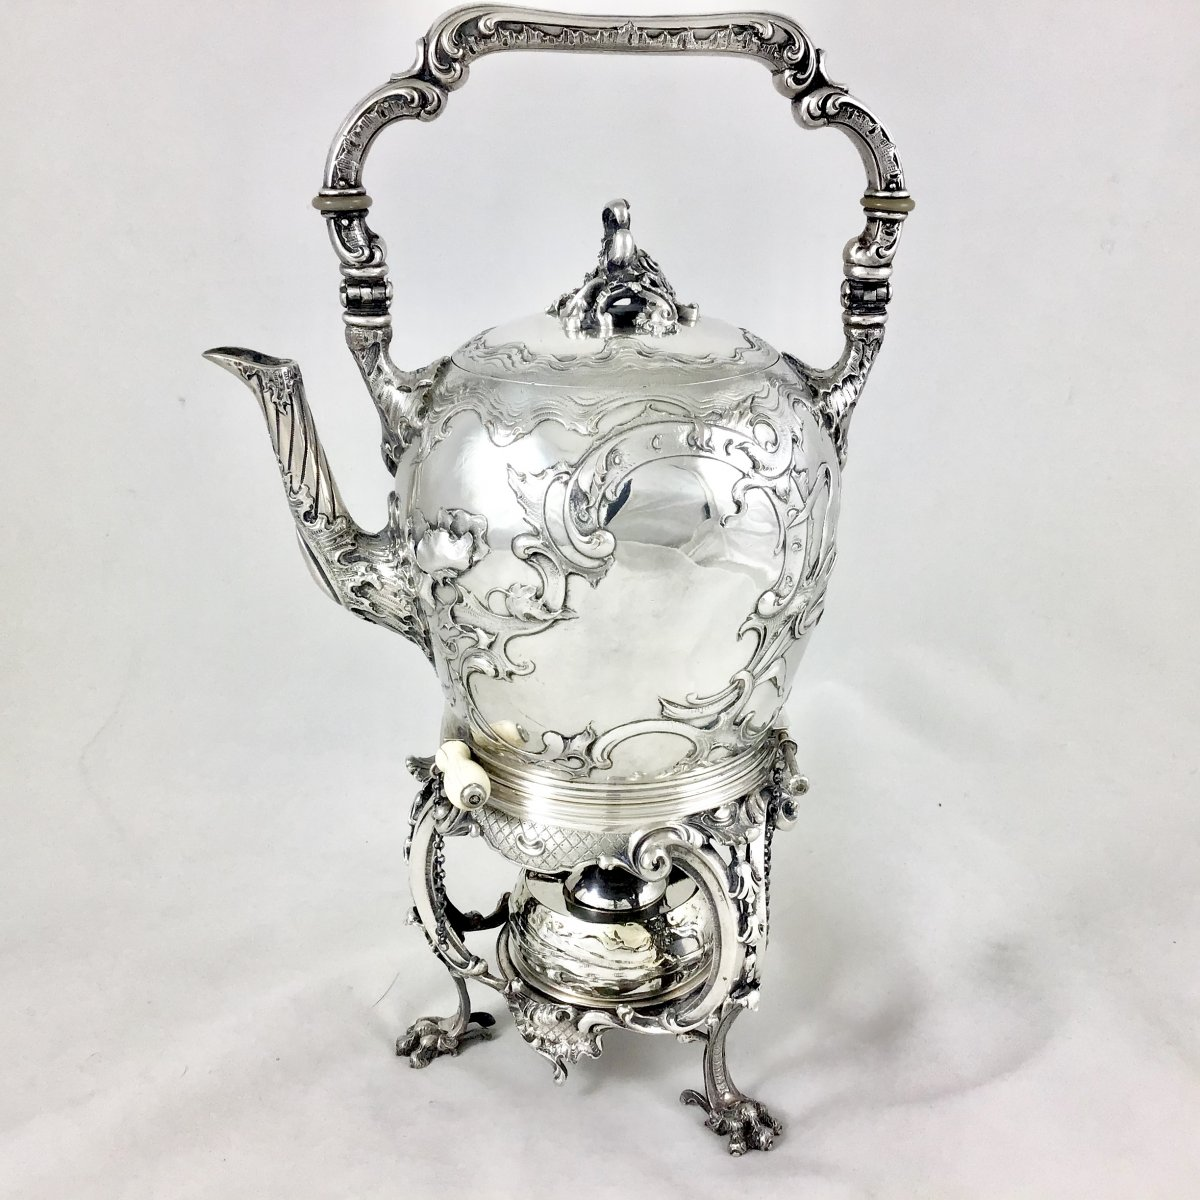 Tea Kettle, Sterling Silver, Wolfers, Brussels Circa 1880